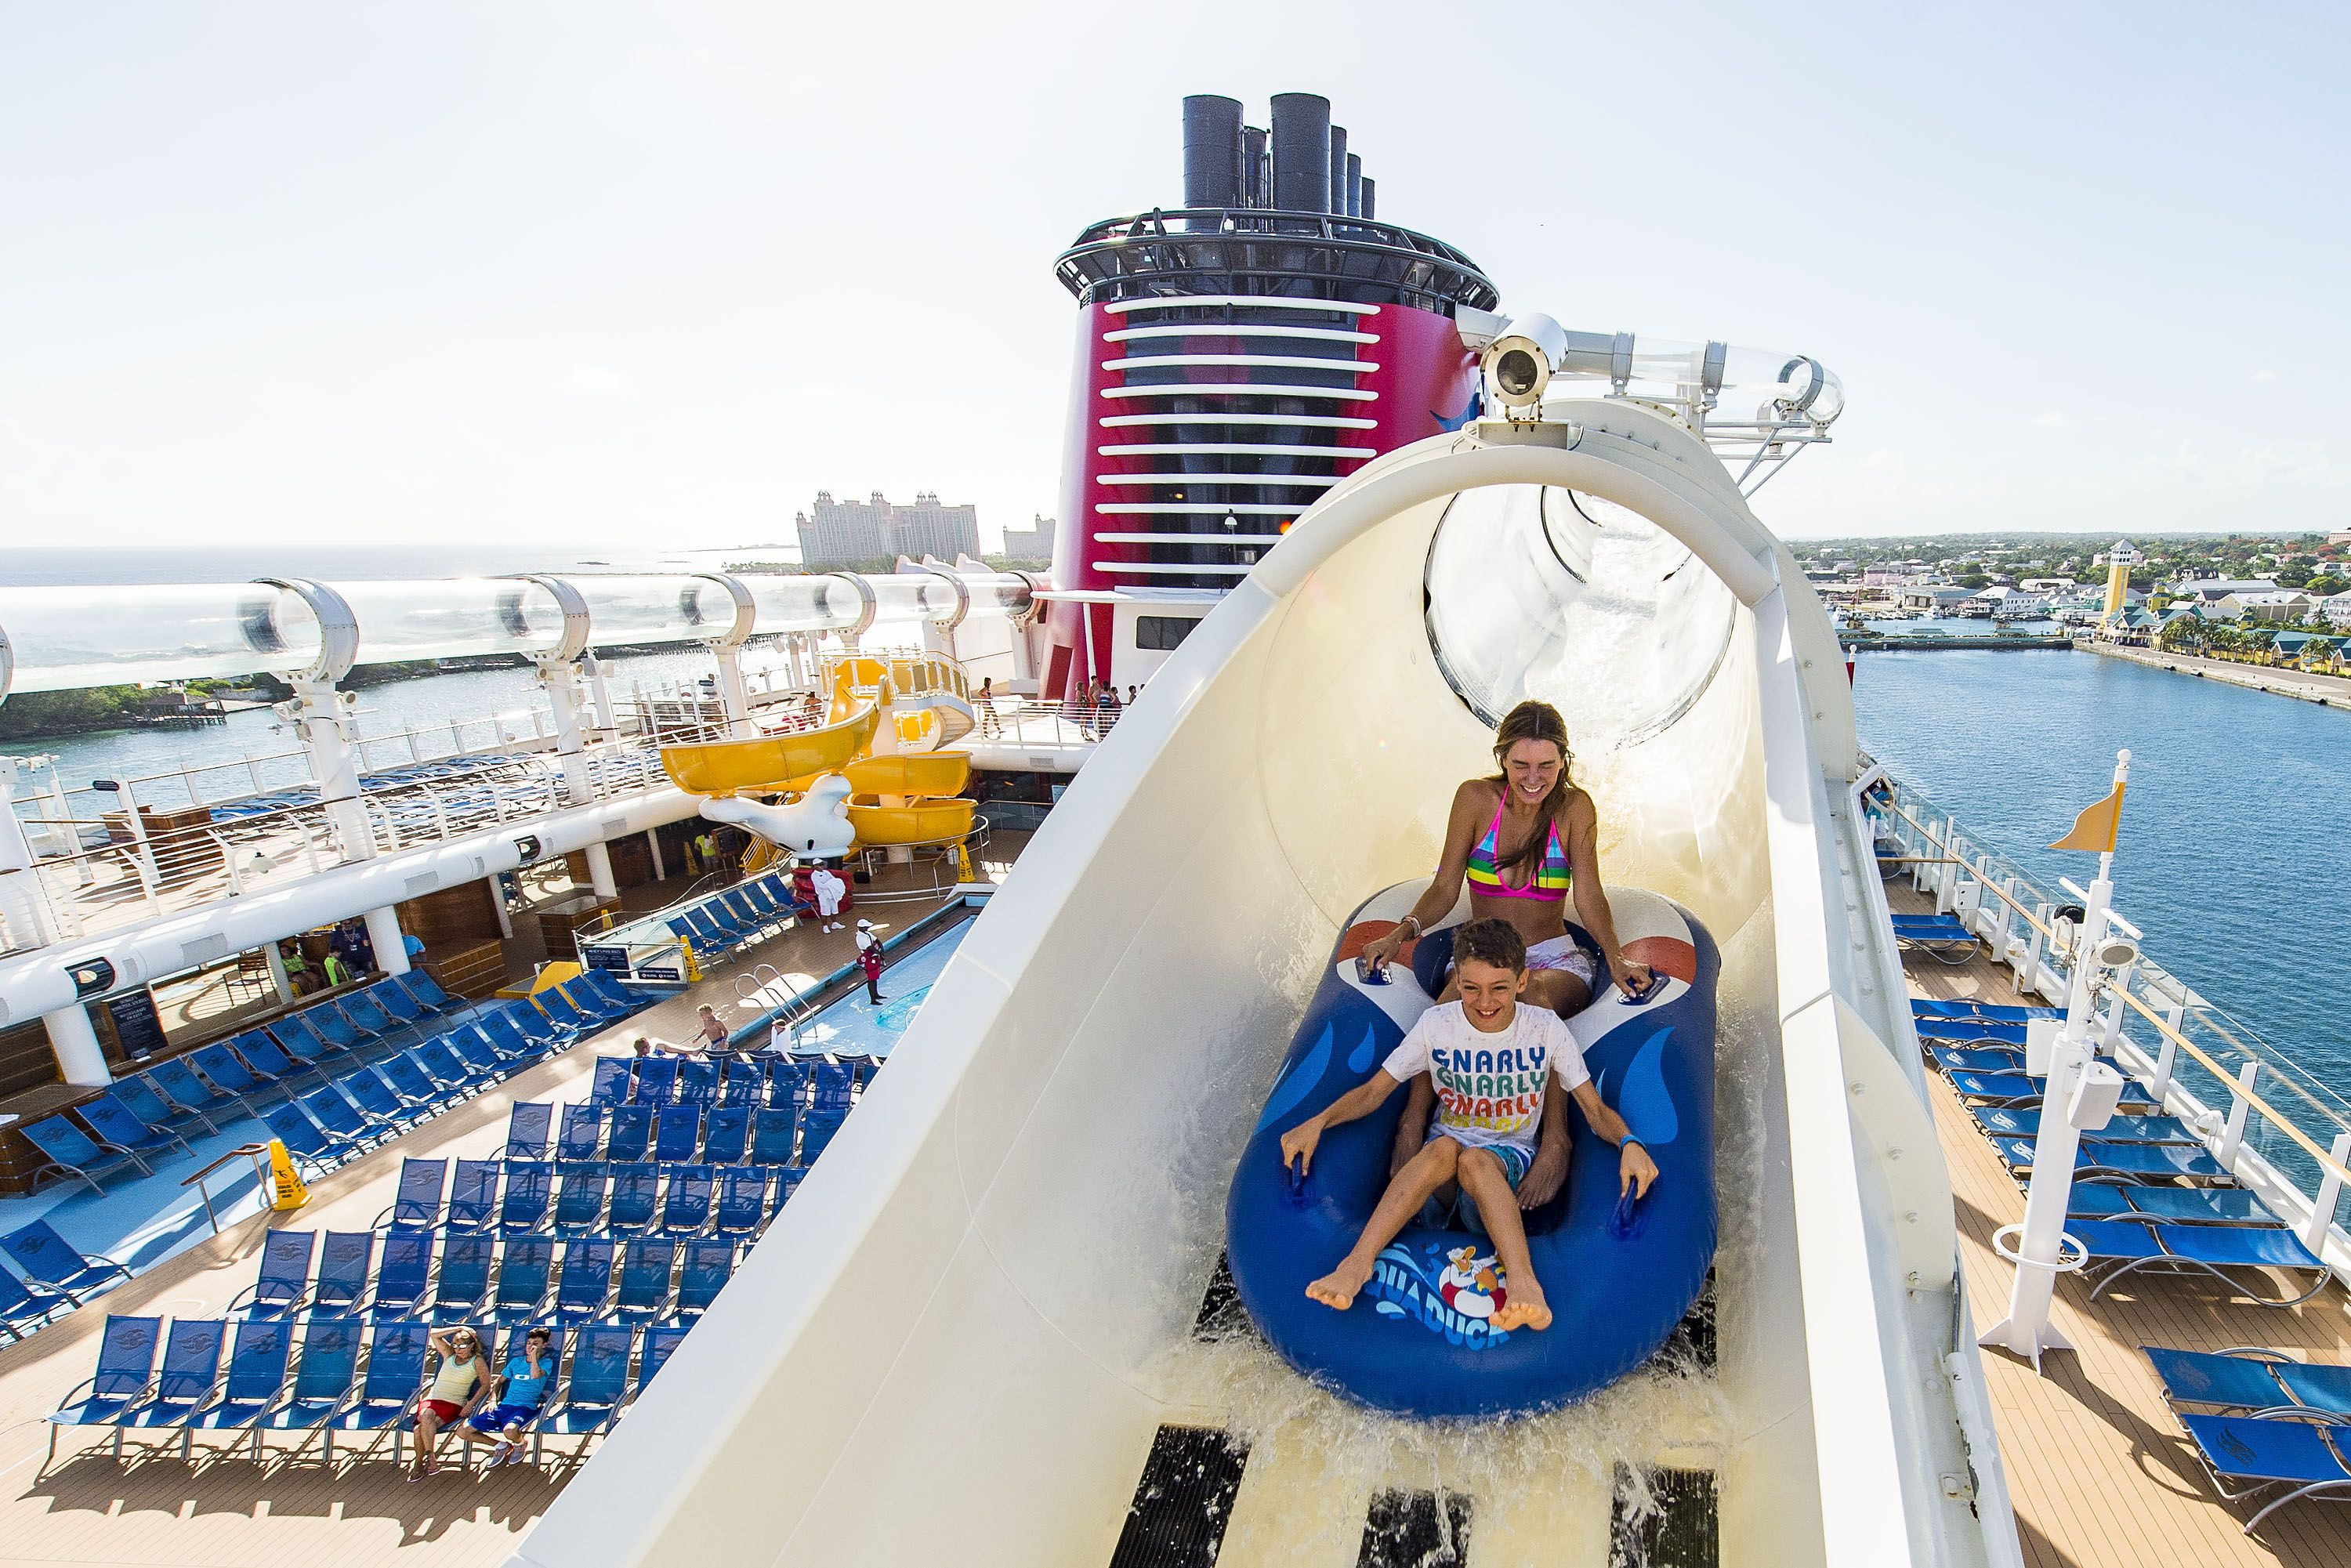 Aquaduck Water Coaster On The Disney Dream Cruise Ship